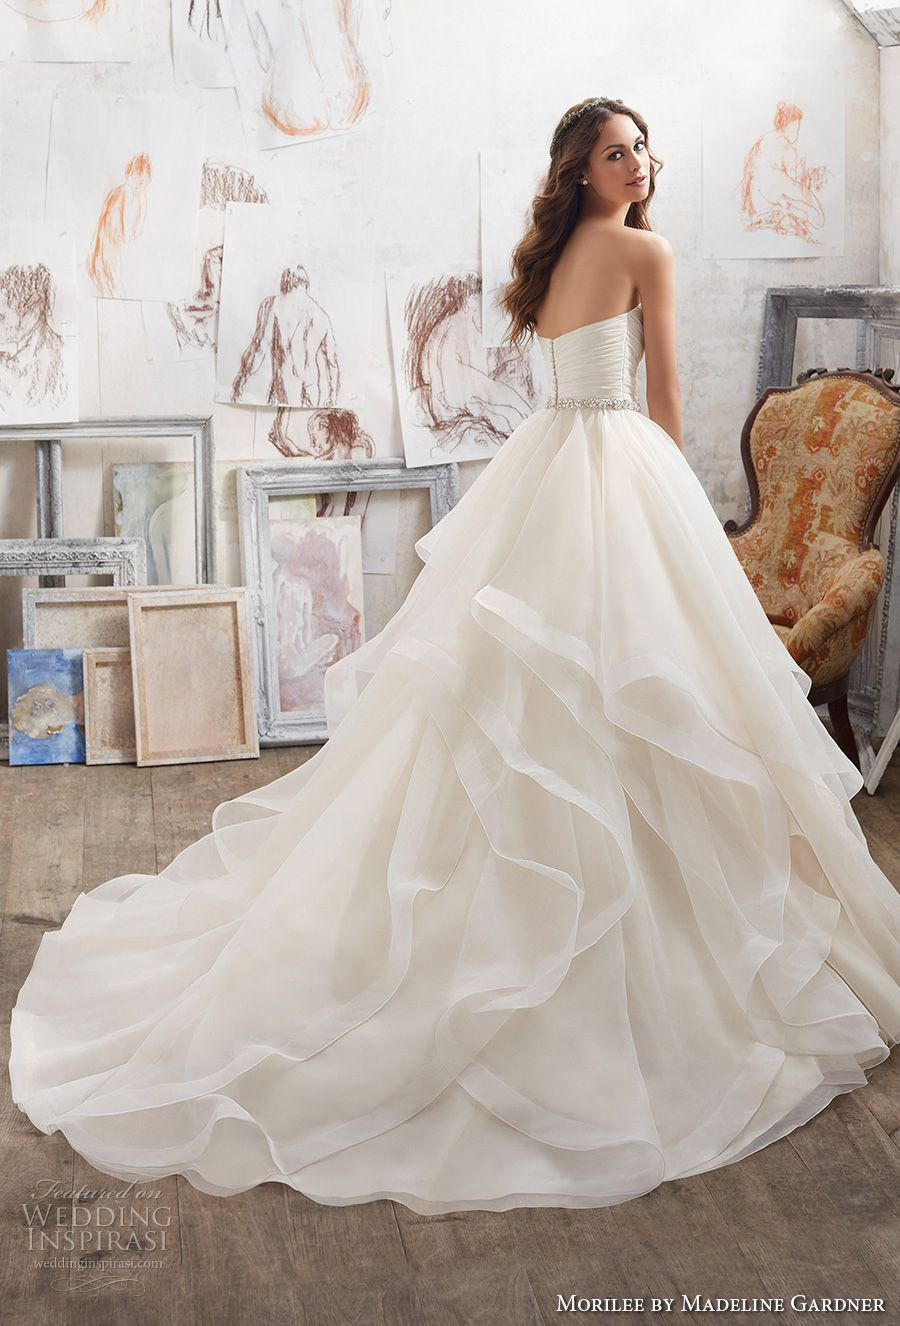 Morilee Spring 2017 Bridal Strapless Sweetheart Neckline Ruched Bodice Layer Skirt Princess Romantic Ball Gown A Line Wedding Dress Chapel Train 5504 Bv: Ball Gown Wedding Dresses Spring At Websimilar.org